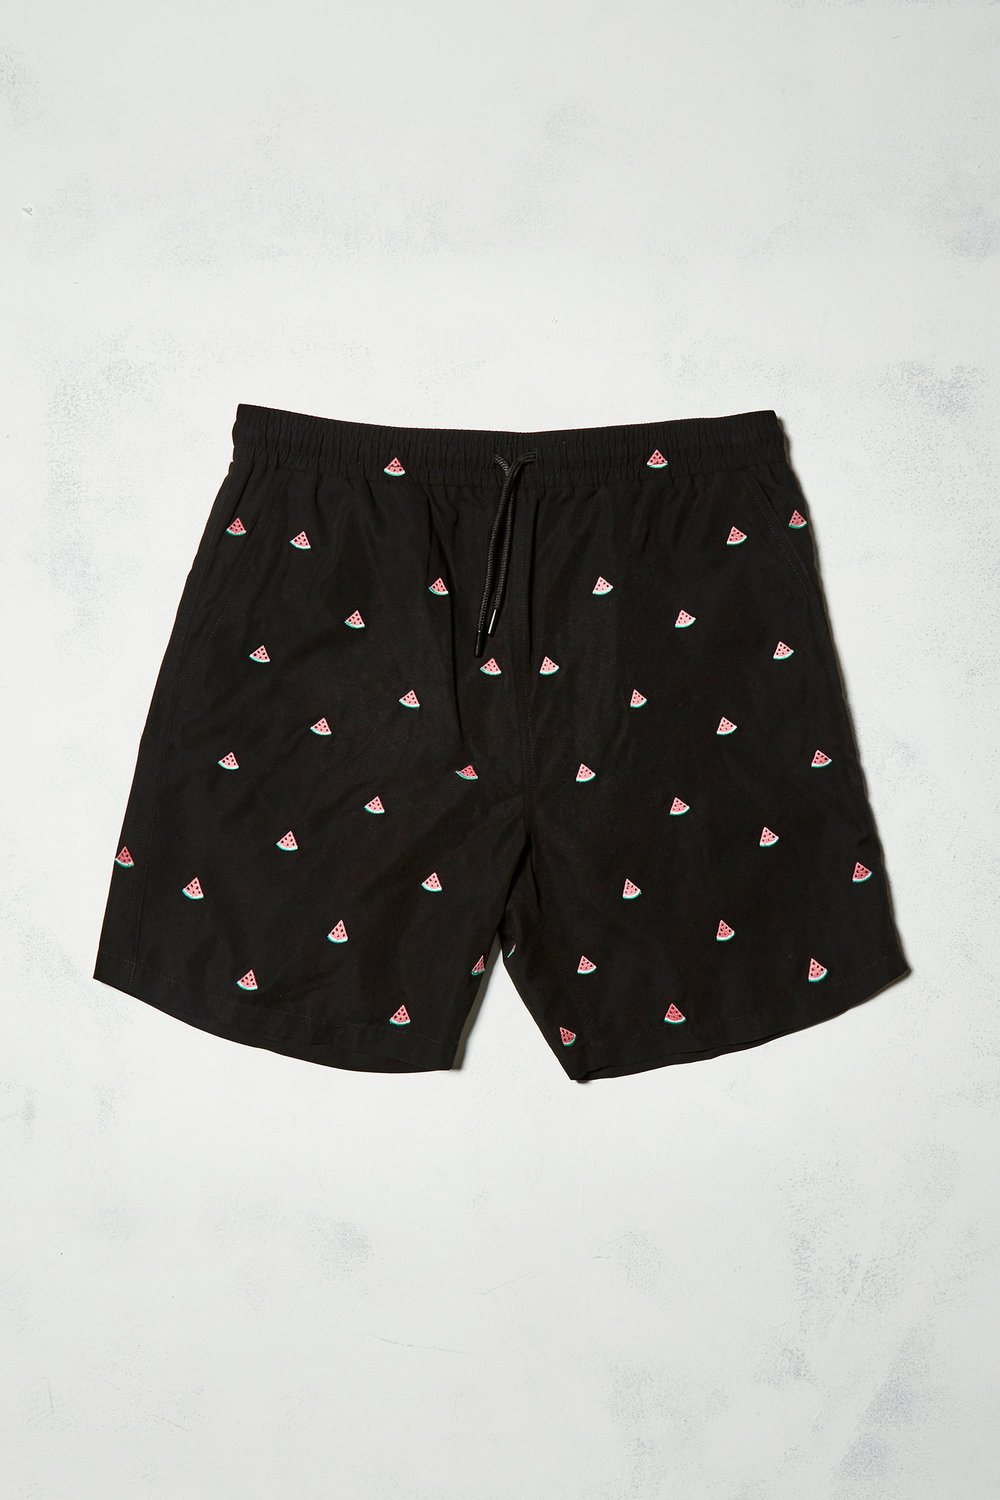 UO watermelon embroidered swim shorts - £32